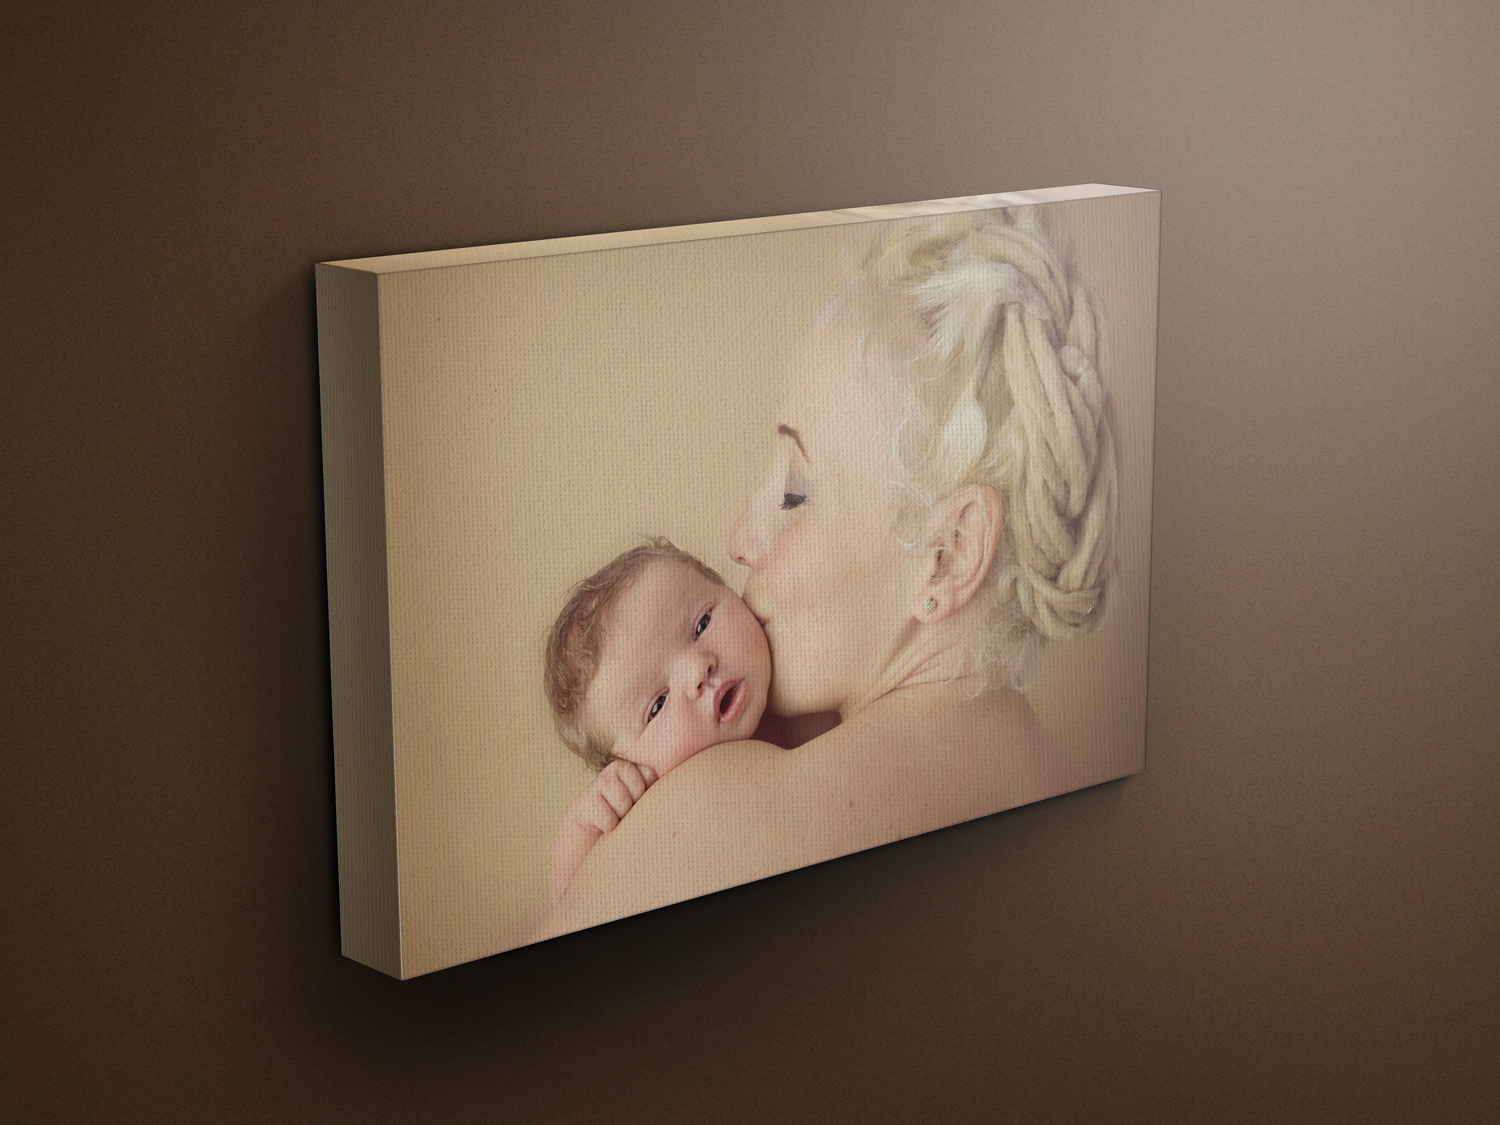 Beautiful images  to view on your wall in your own home. wwwyoudeservethis.com